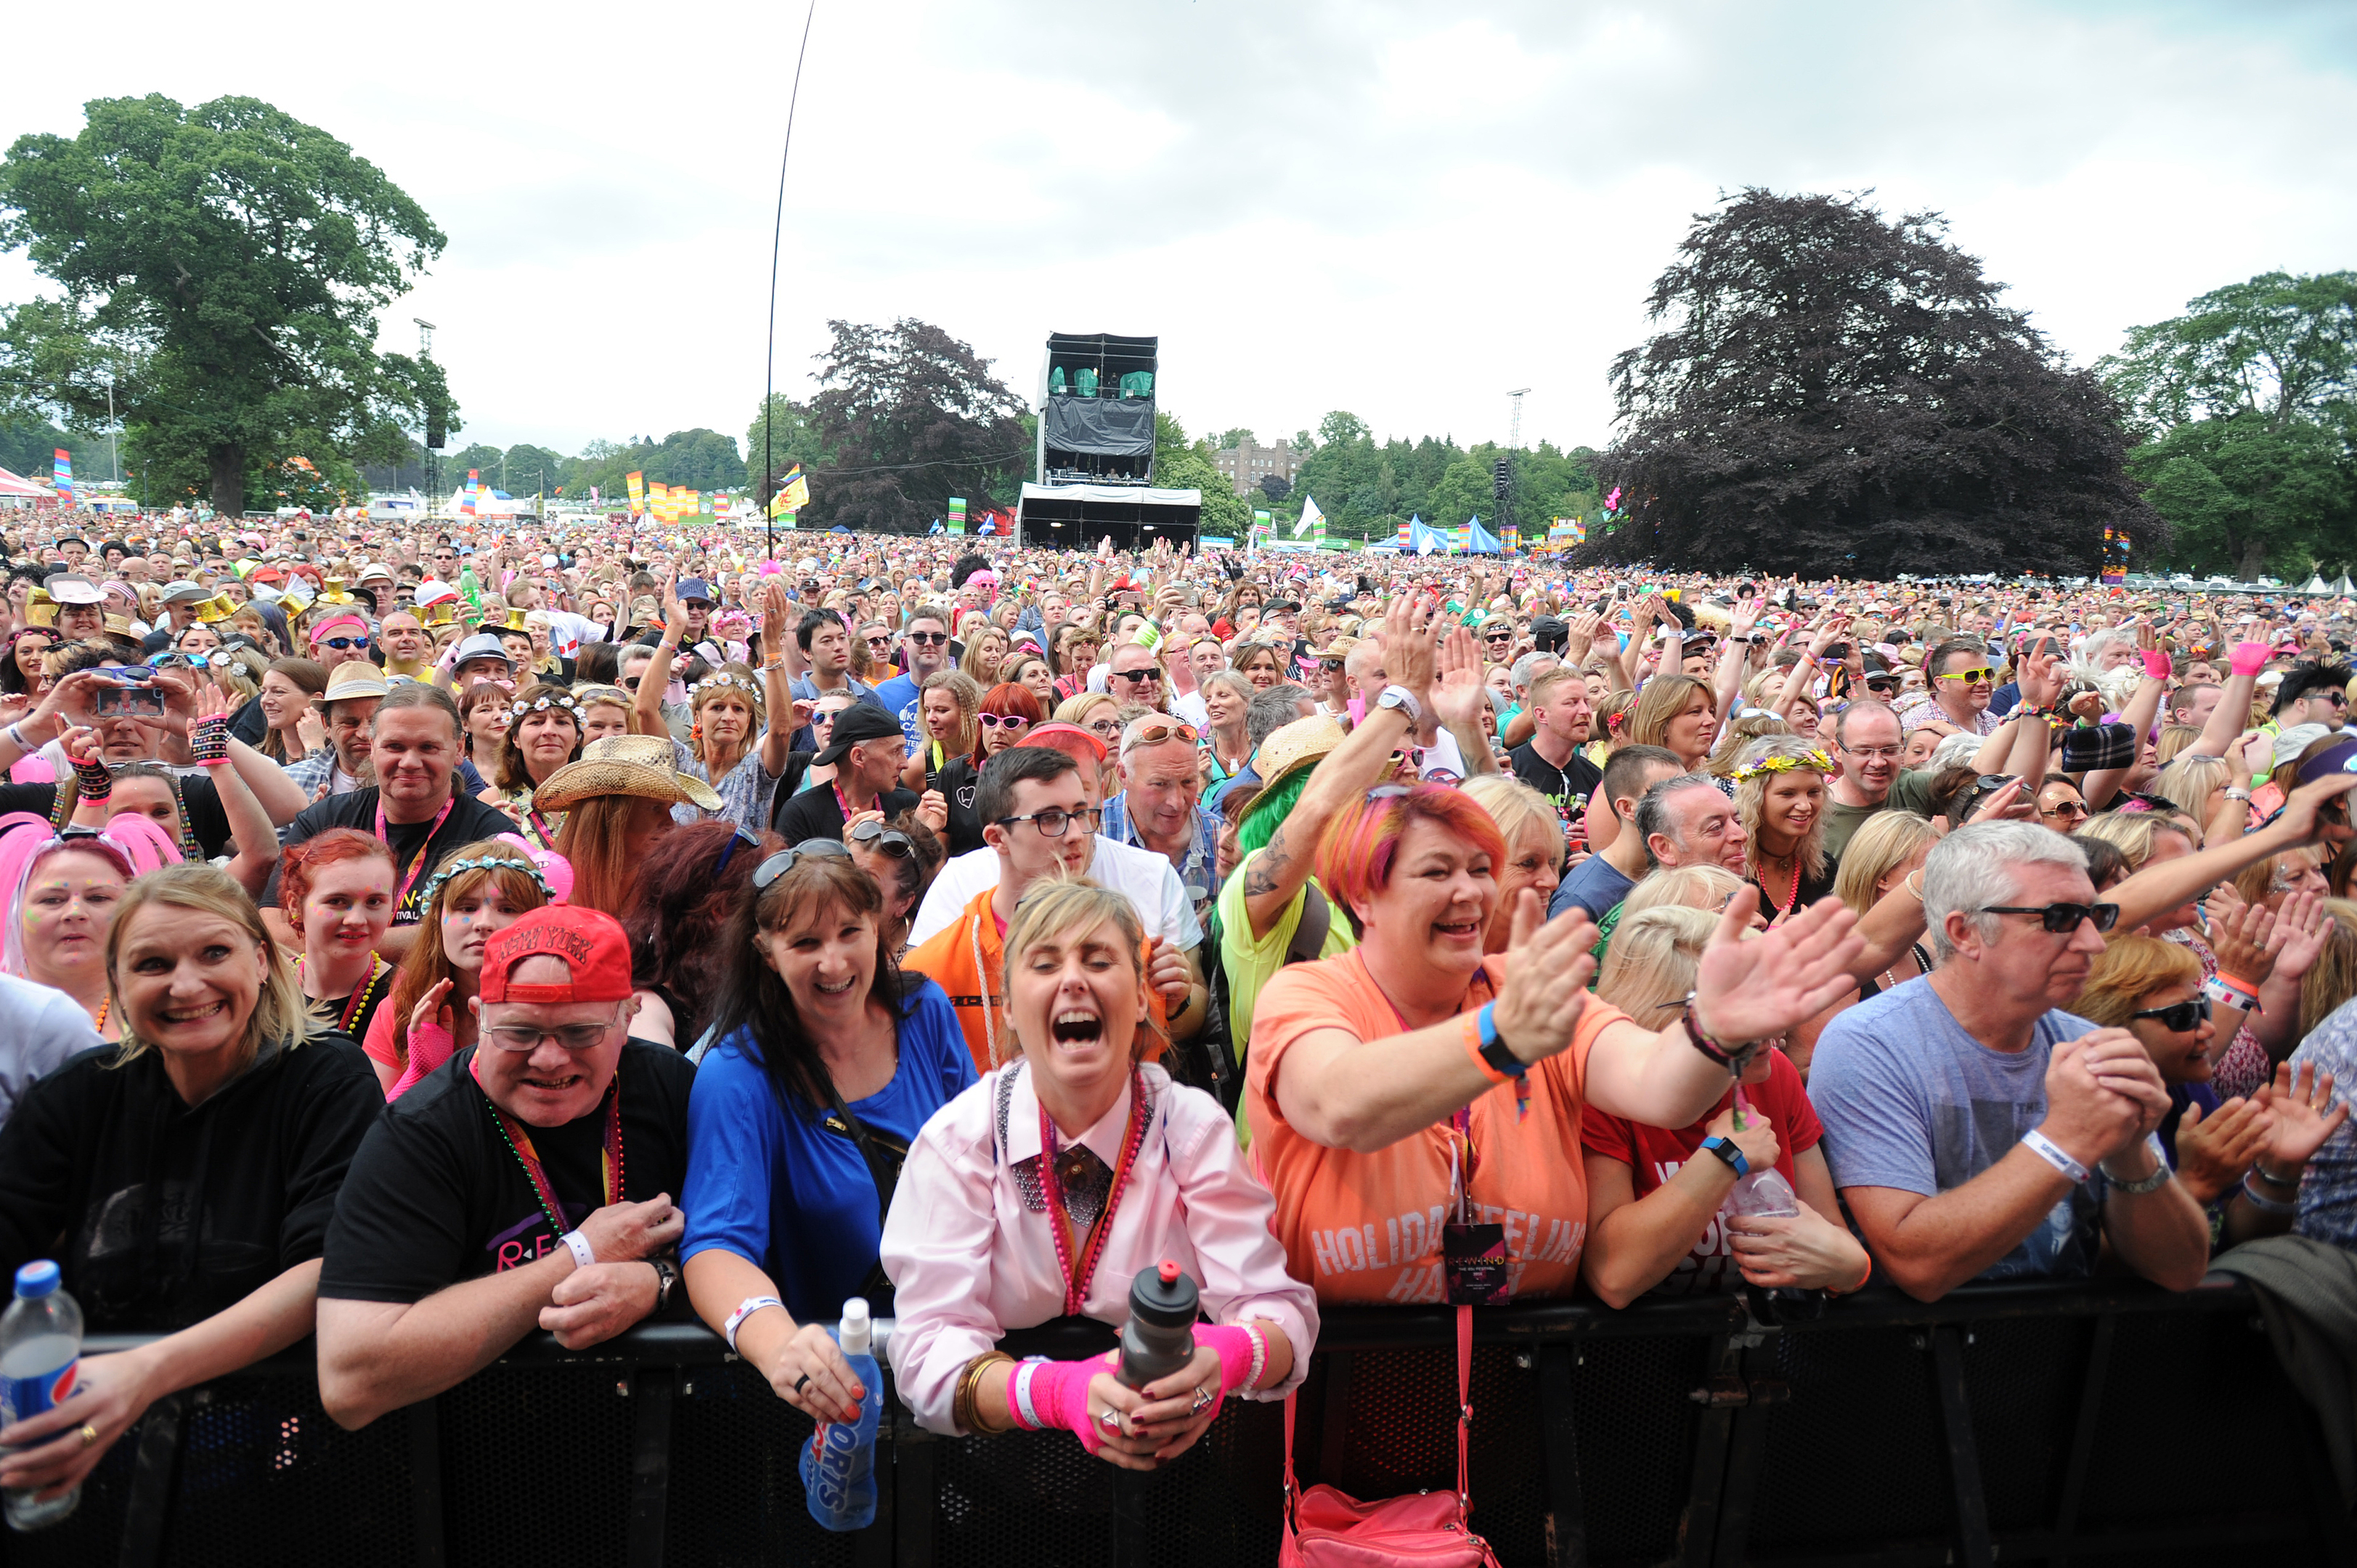 Rewind Festival has shown how successfully a large-scale music festival can work in the Scone Palace parklands.